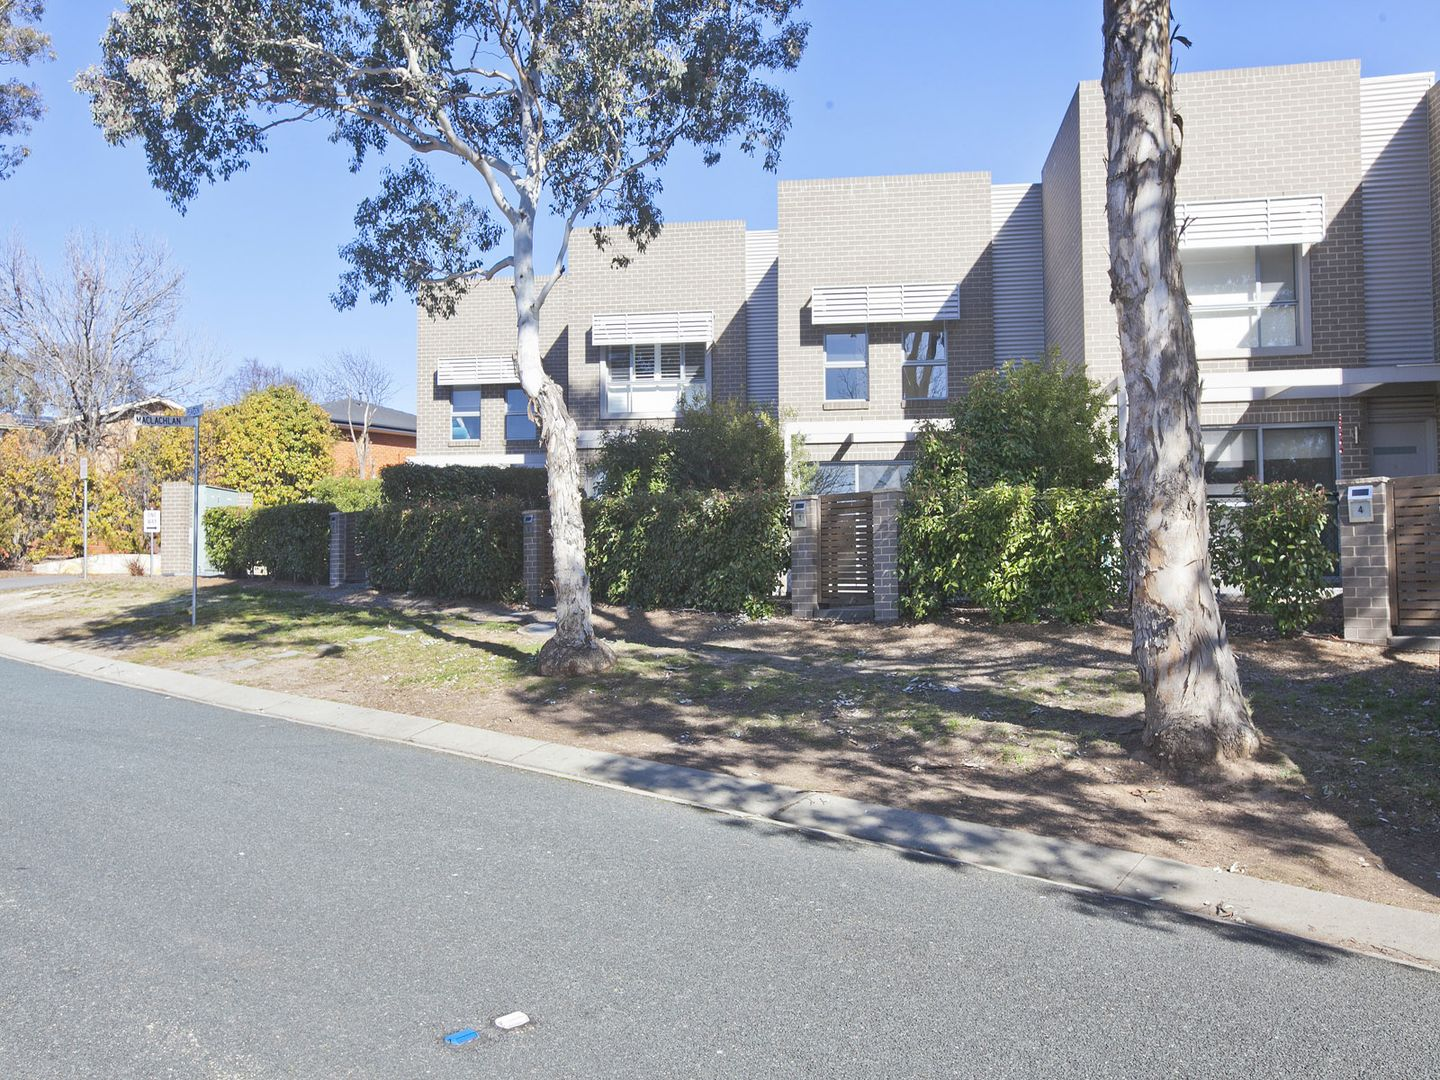 3/48 Pearson Street, Holder ACT 2611, Image 0